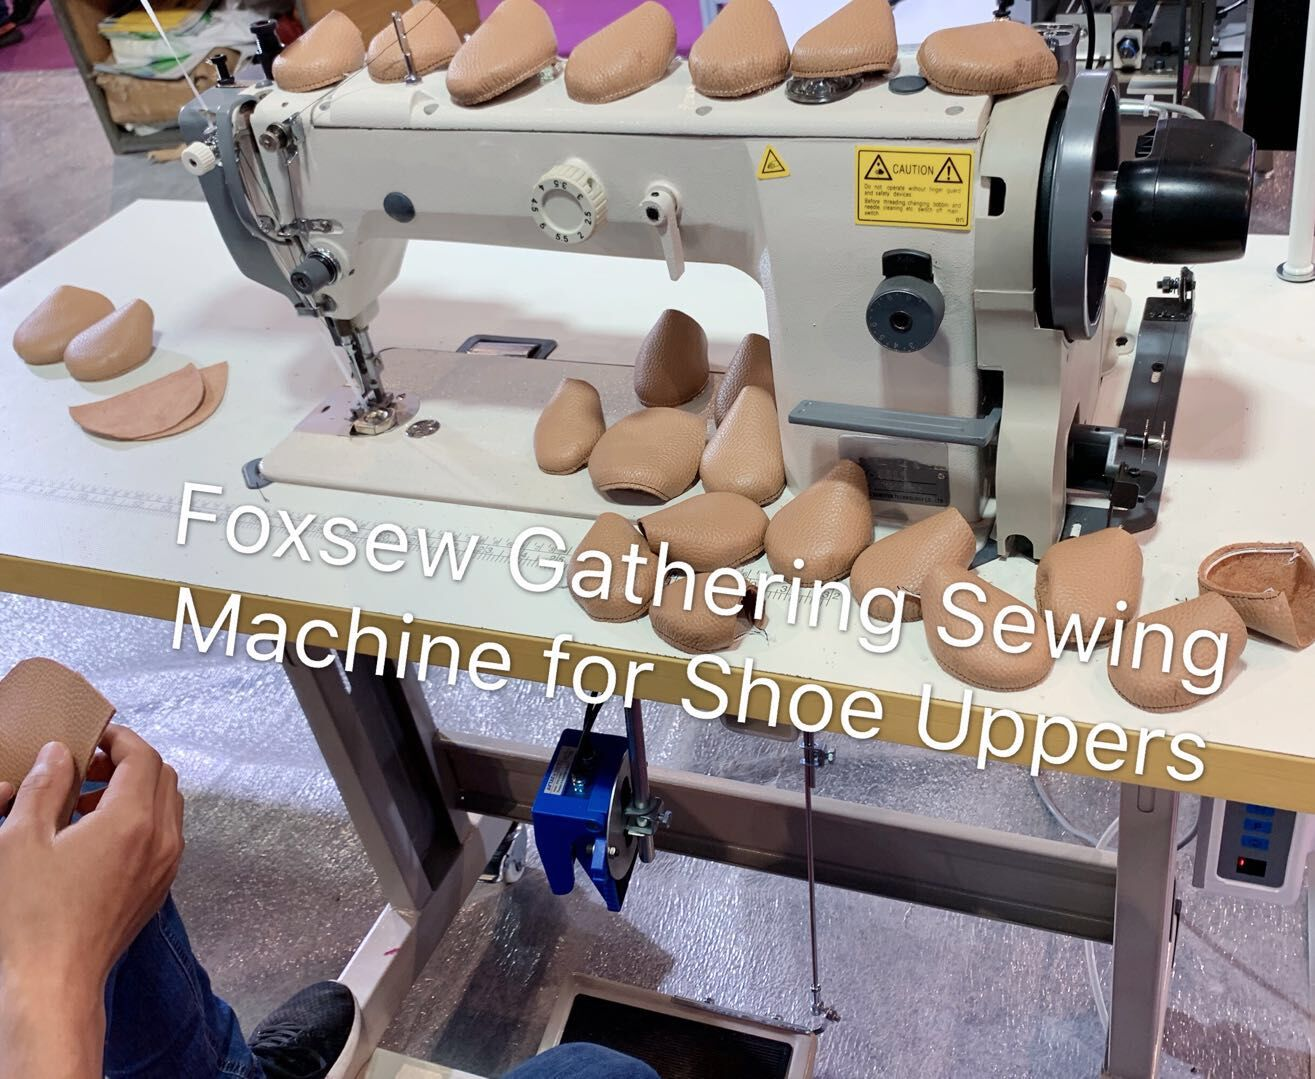 FOXSEW Gathering sewing machine for shoe uppers